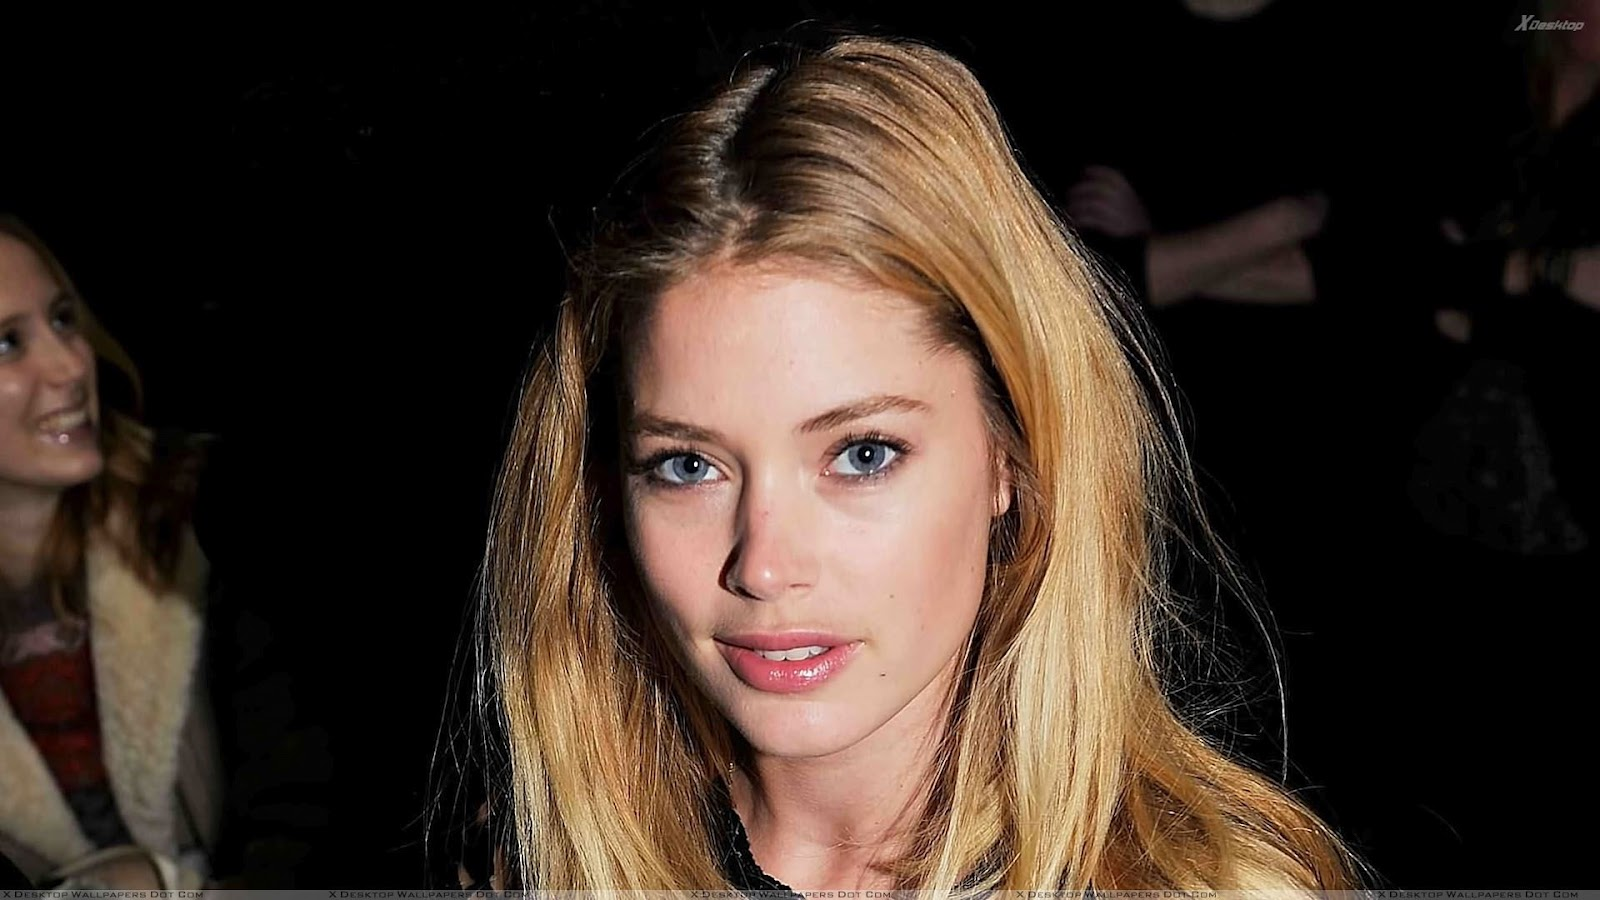 Doutzen Kroes Profile Pictures 2012